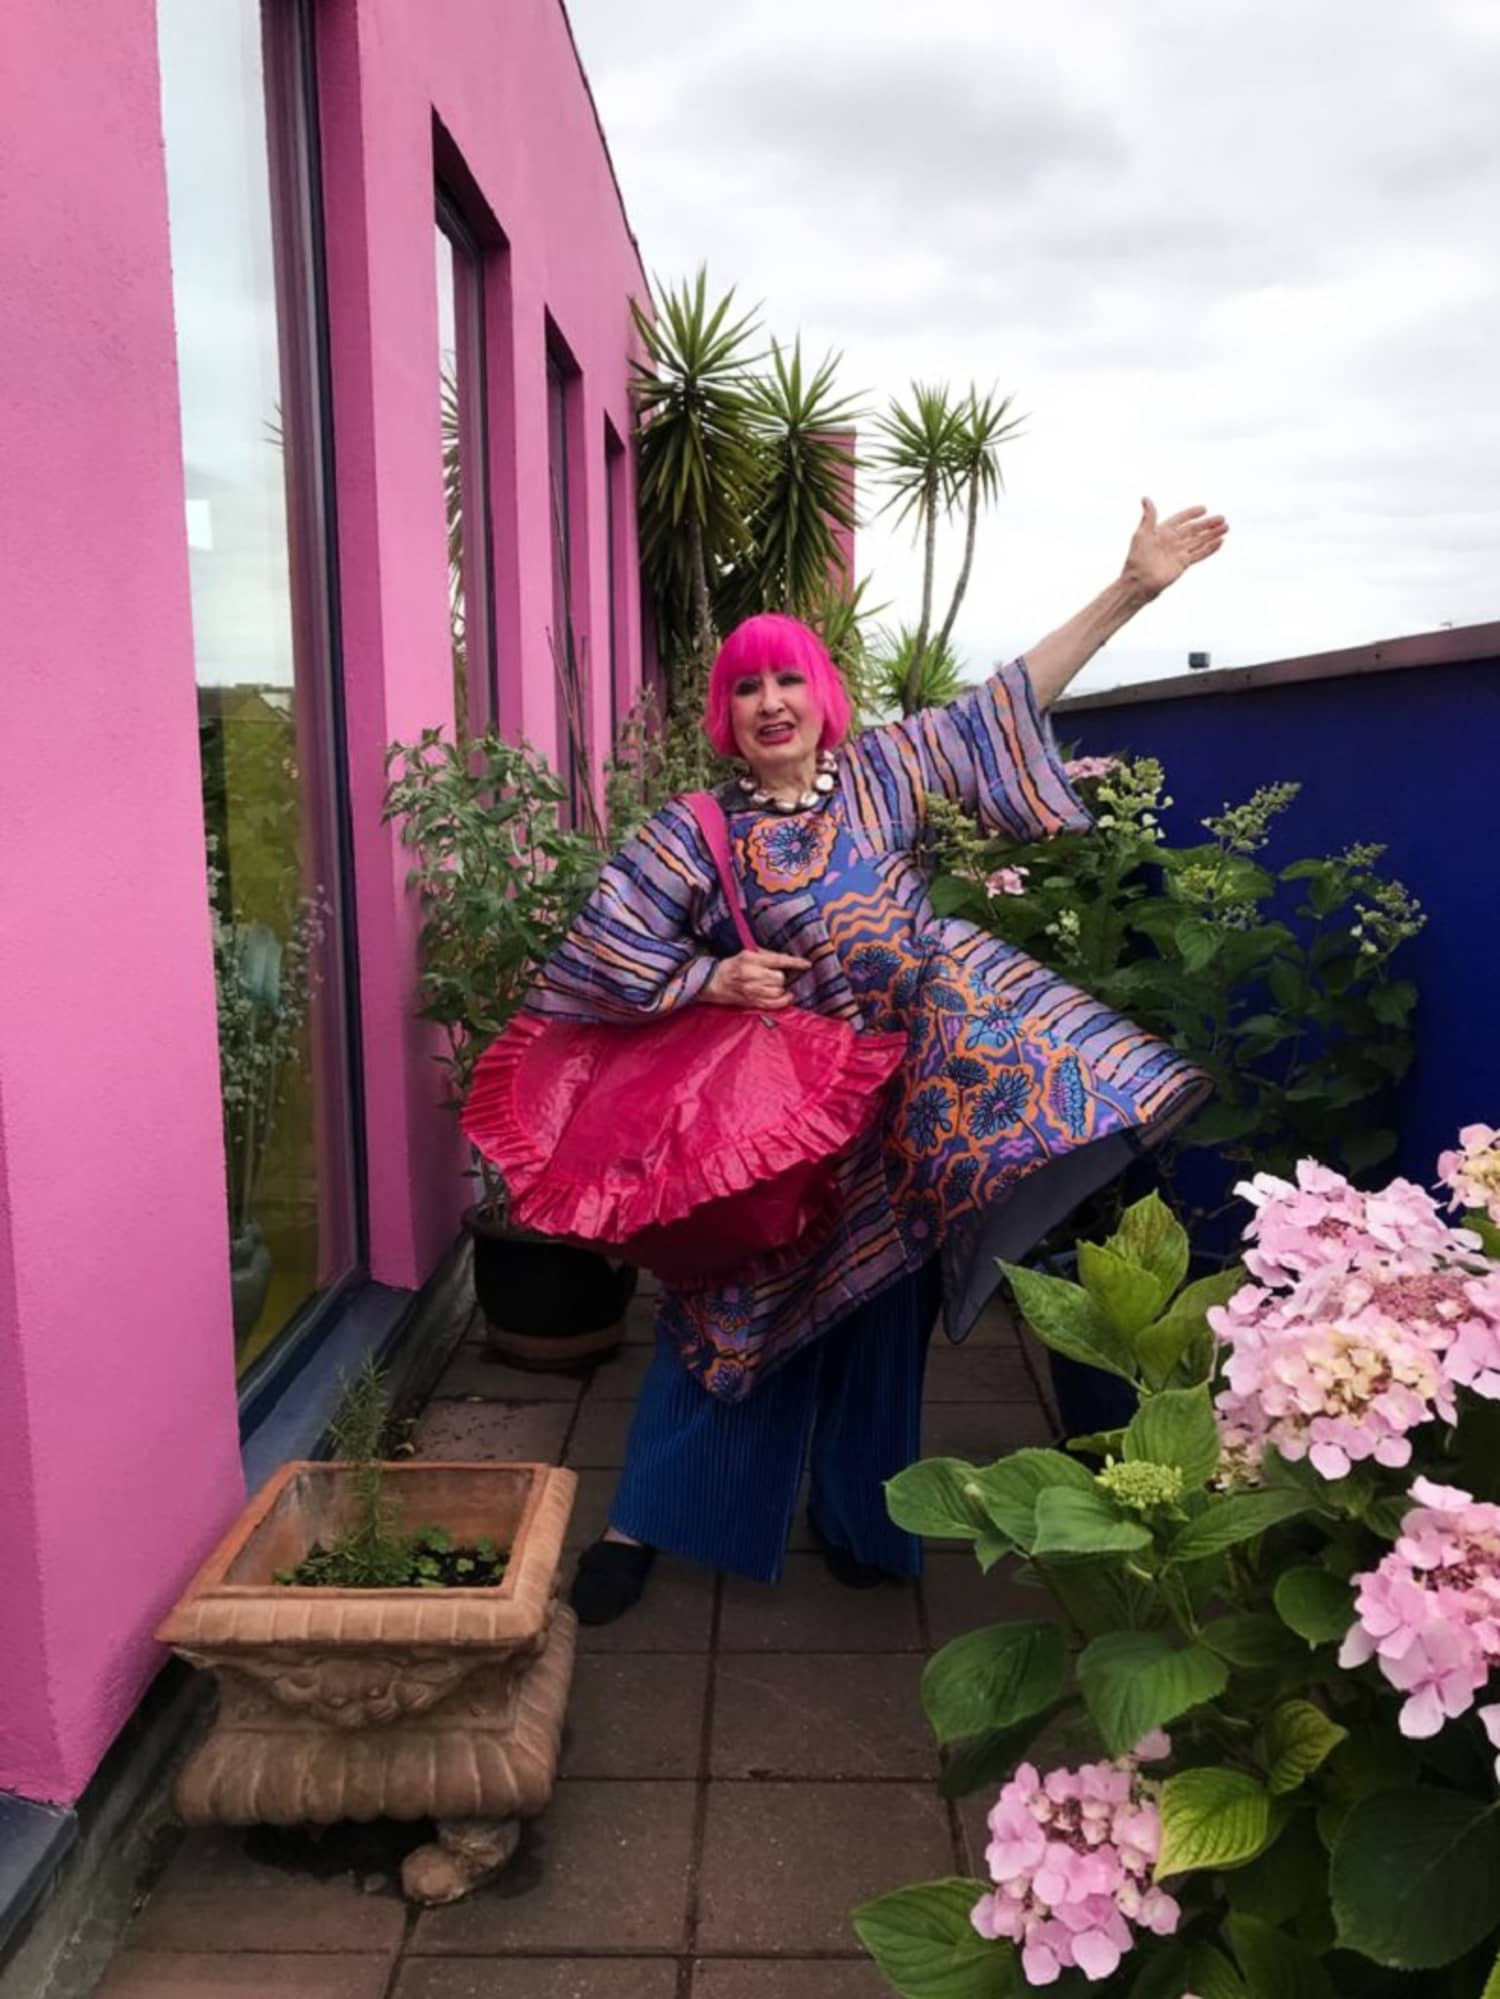 IKEA is Partnering With Iconic Fashion Designer Zandra Rhodes For Whimsical Home Products